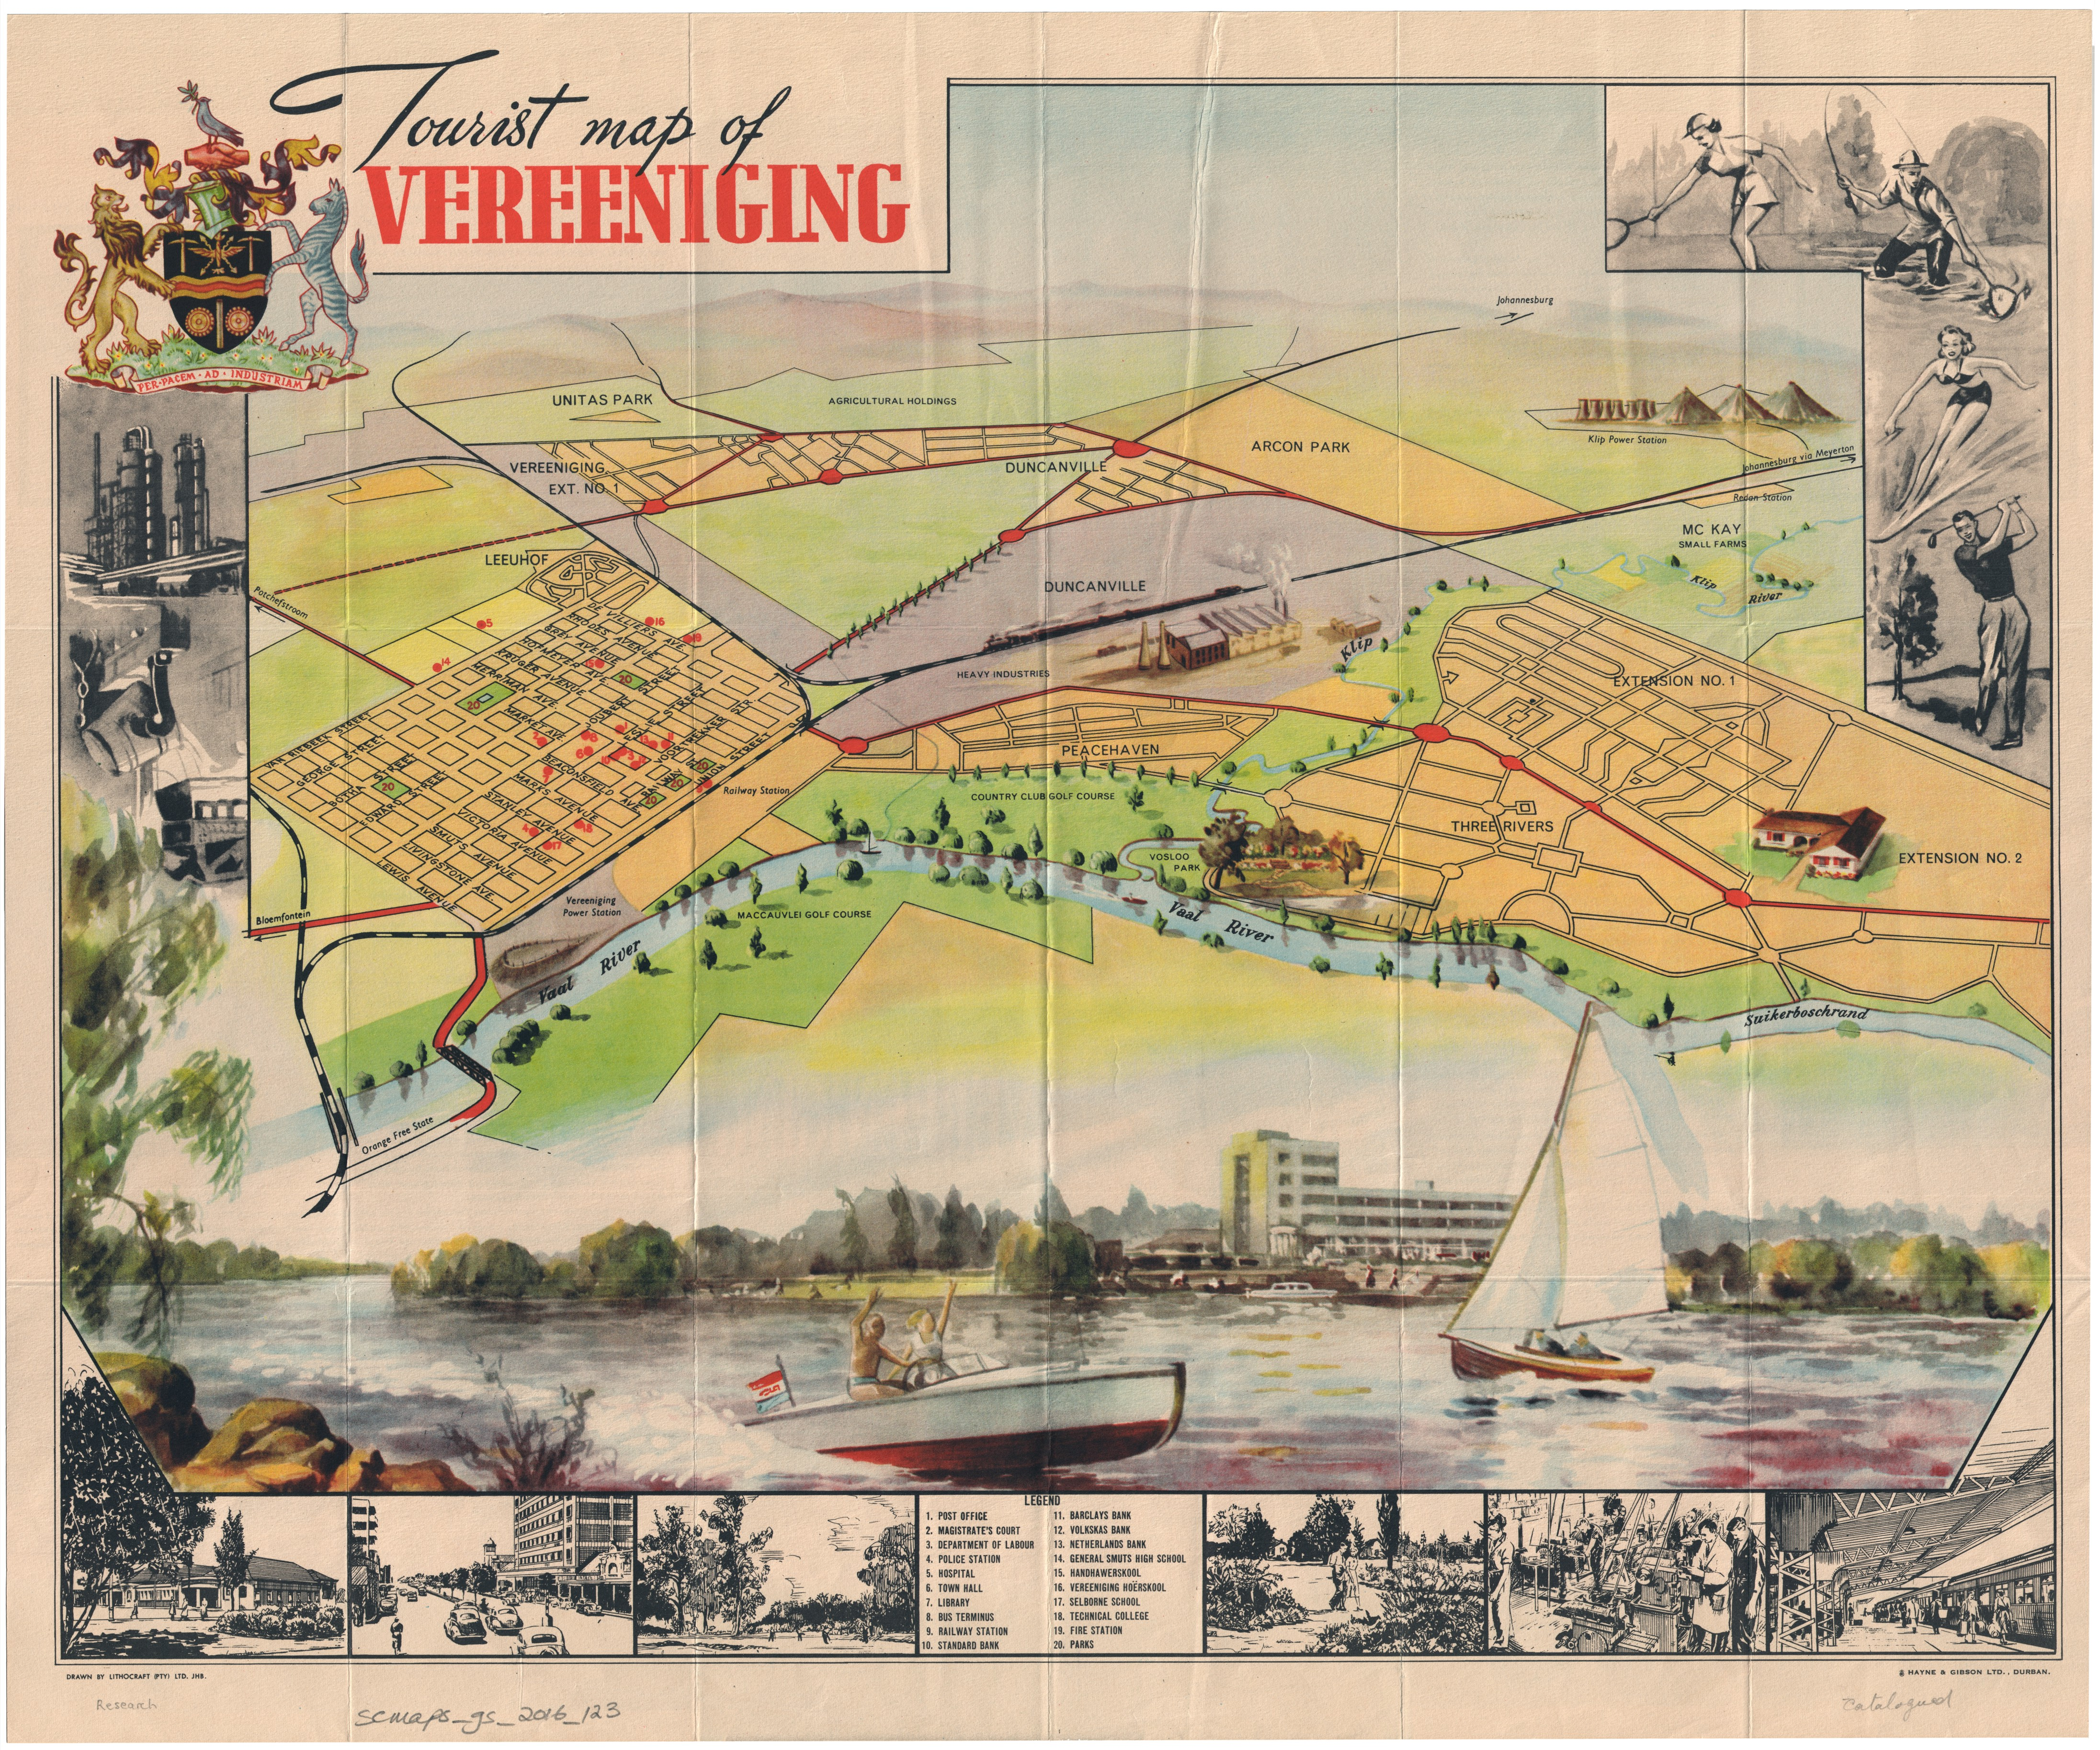 Tourist map of Vereeniging UCT Libraries Digital Collections